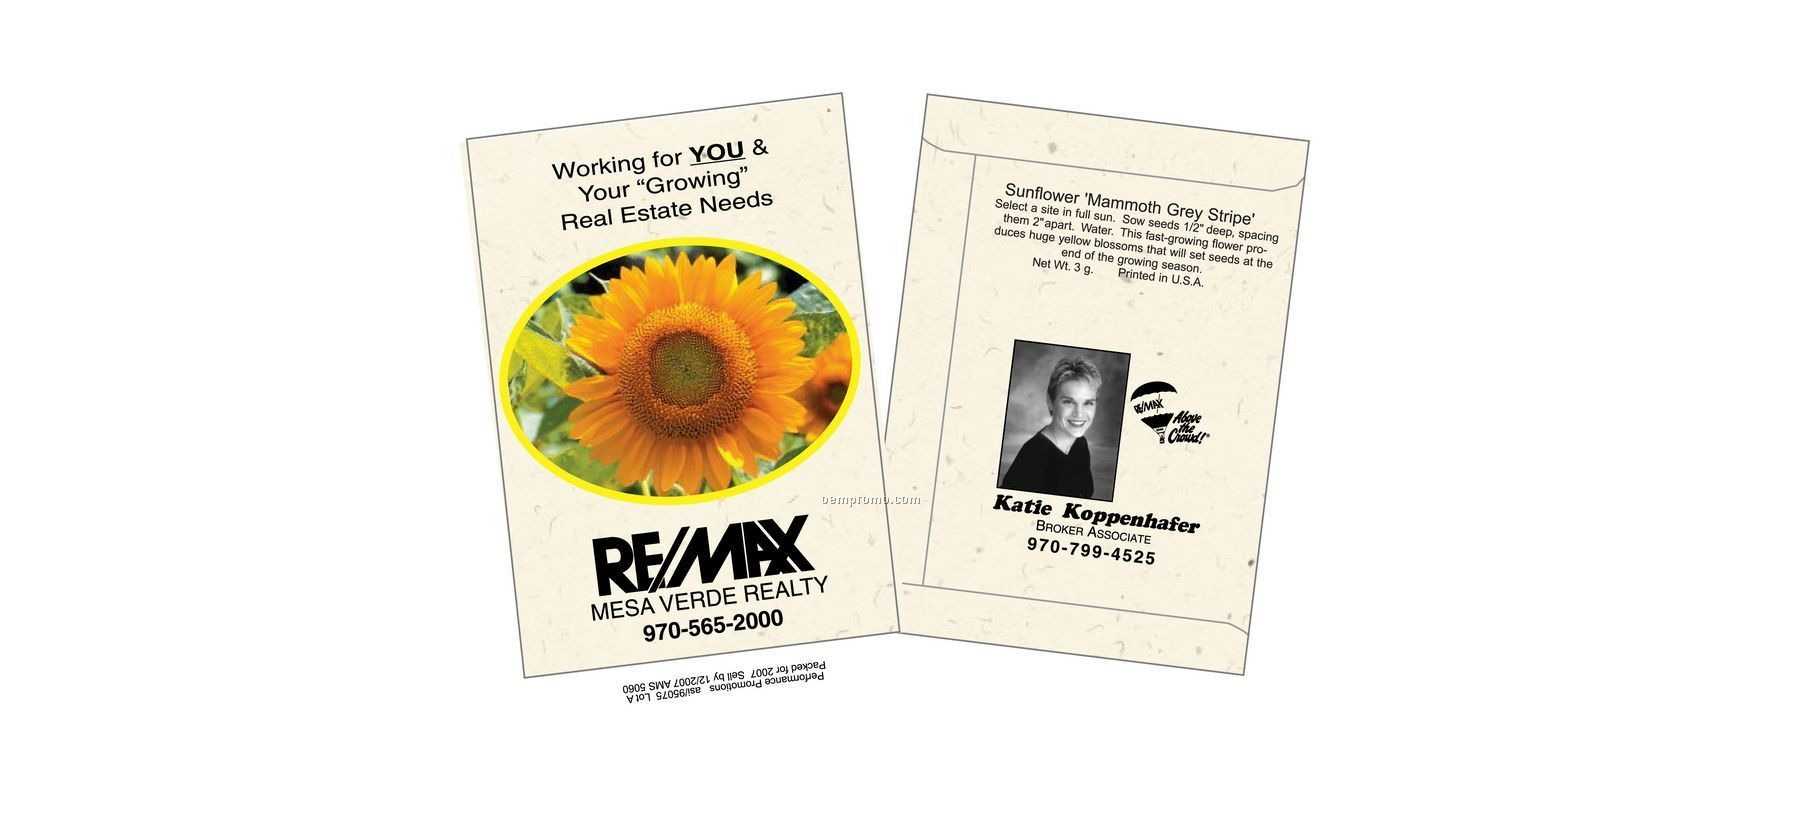 Sunflower- Mammoth Gray Stripe - Seed Packet (1 Color)